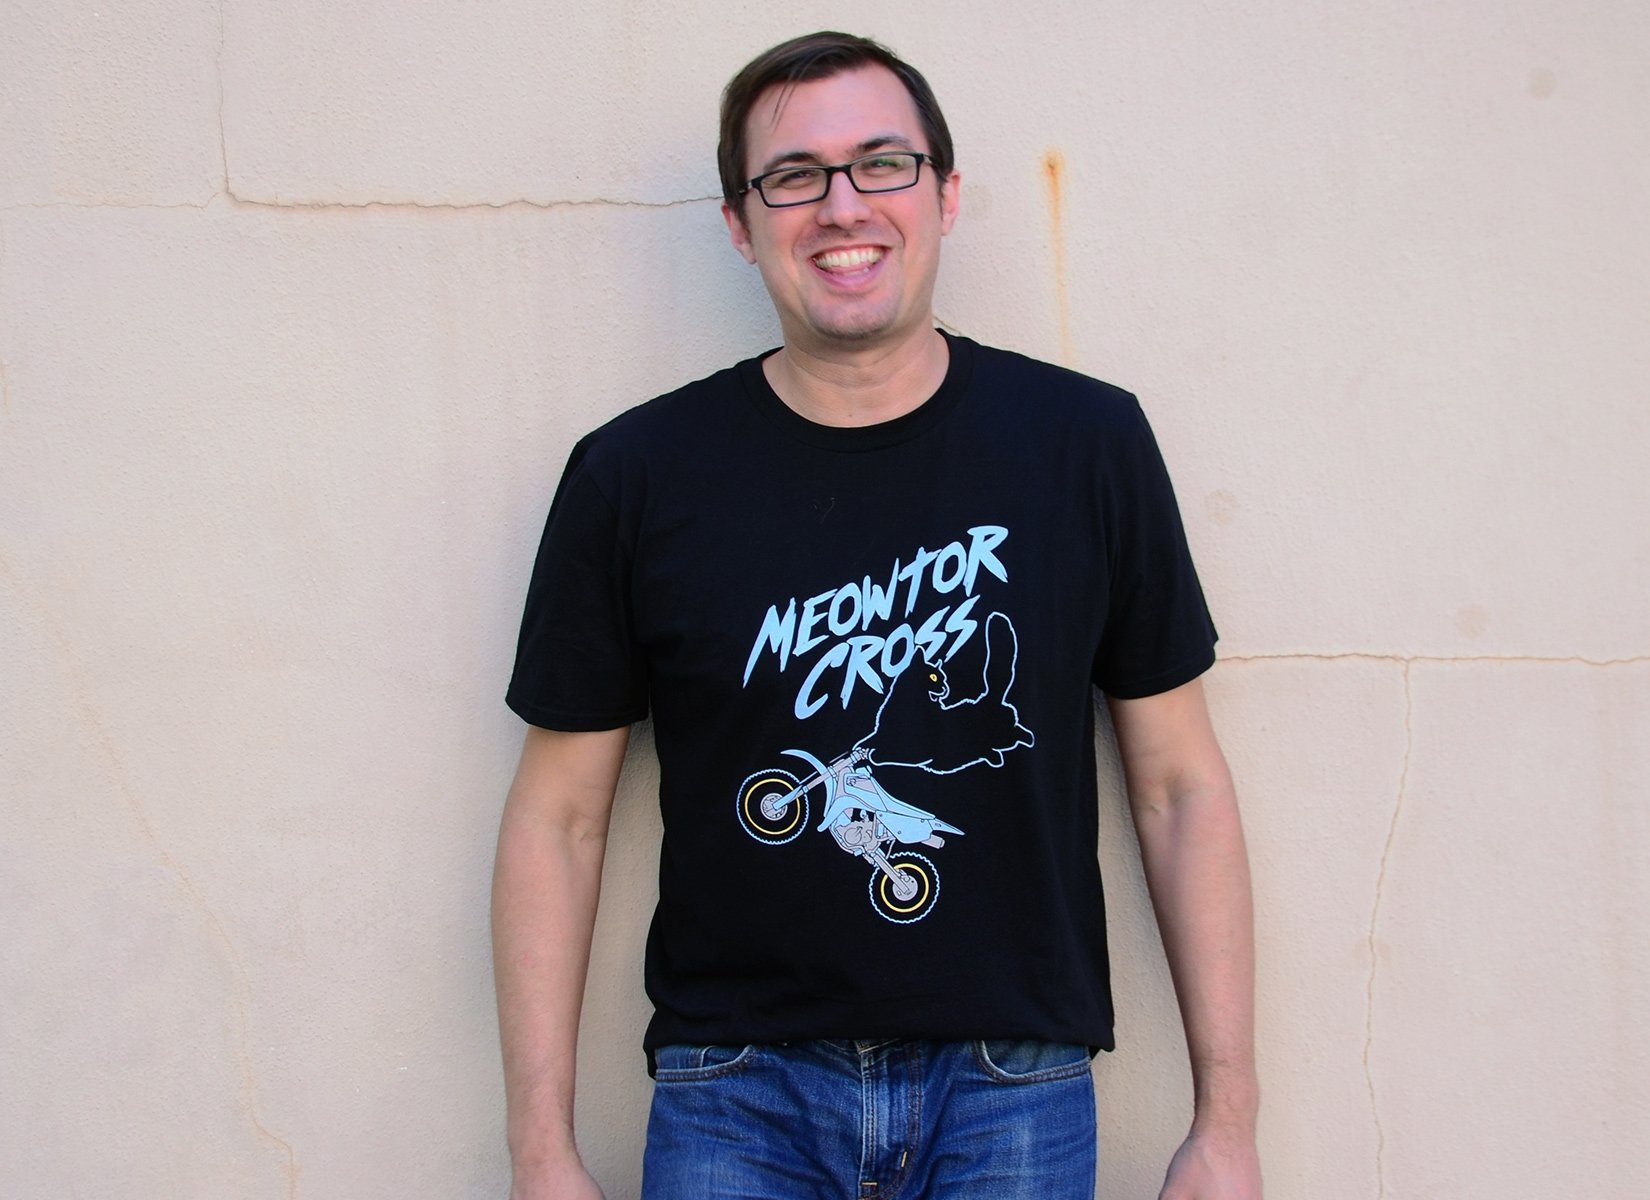 Meowtor Cross on Mens T-Shirt